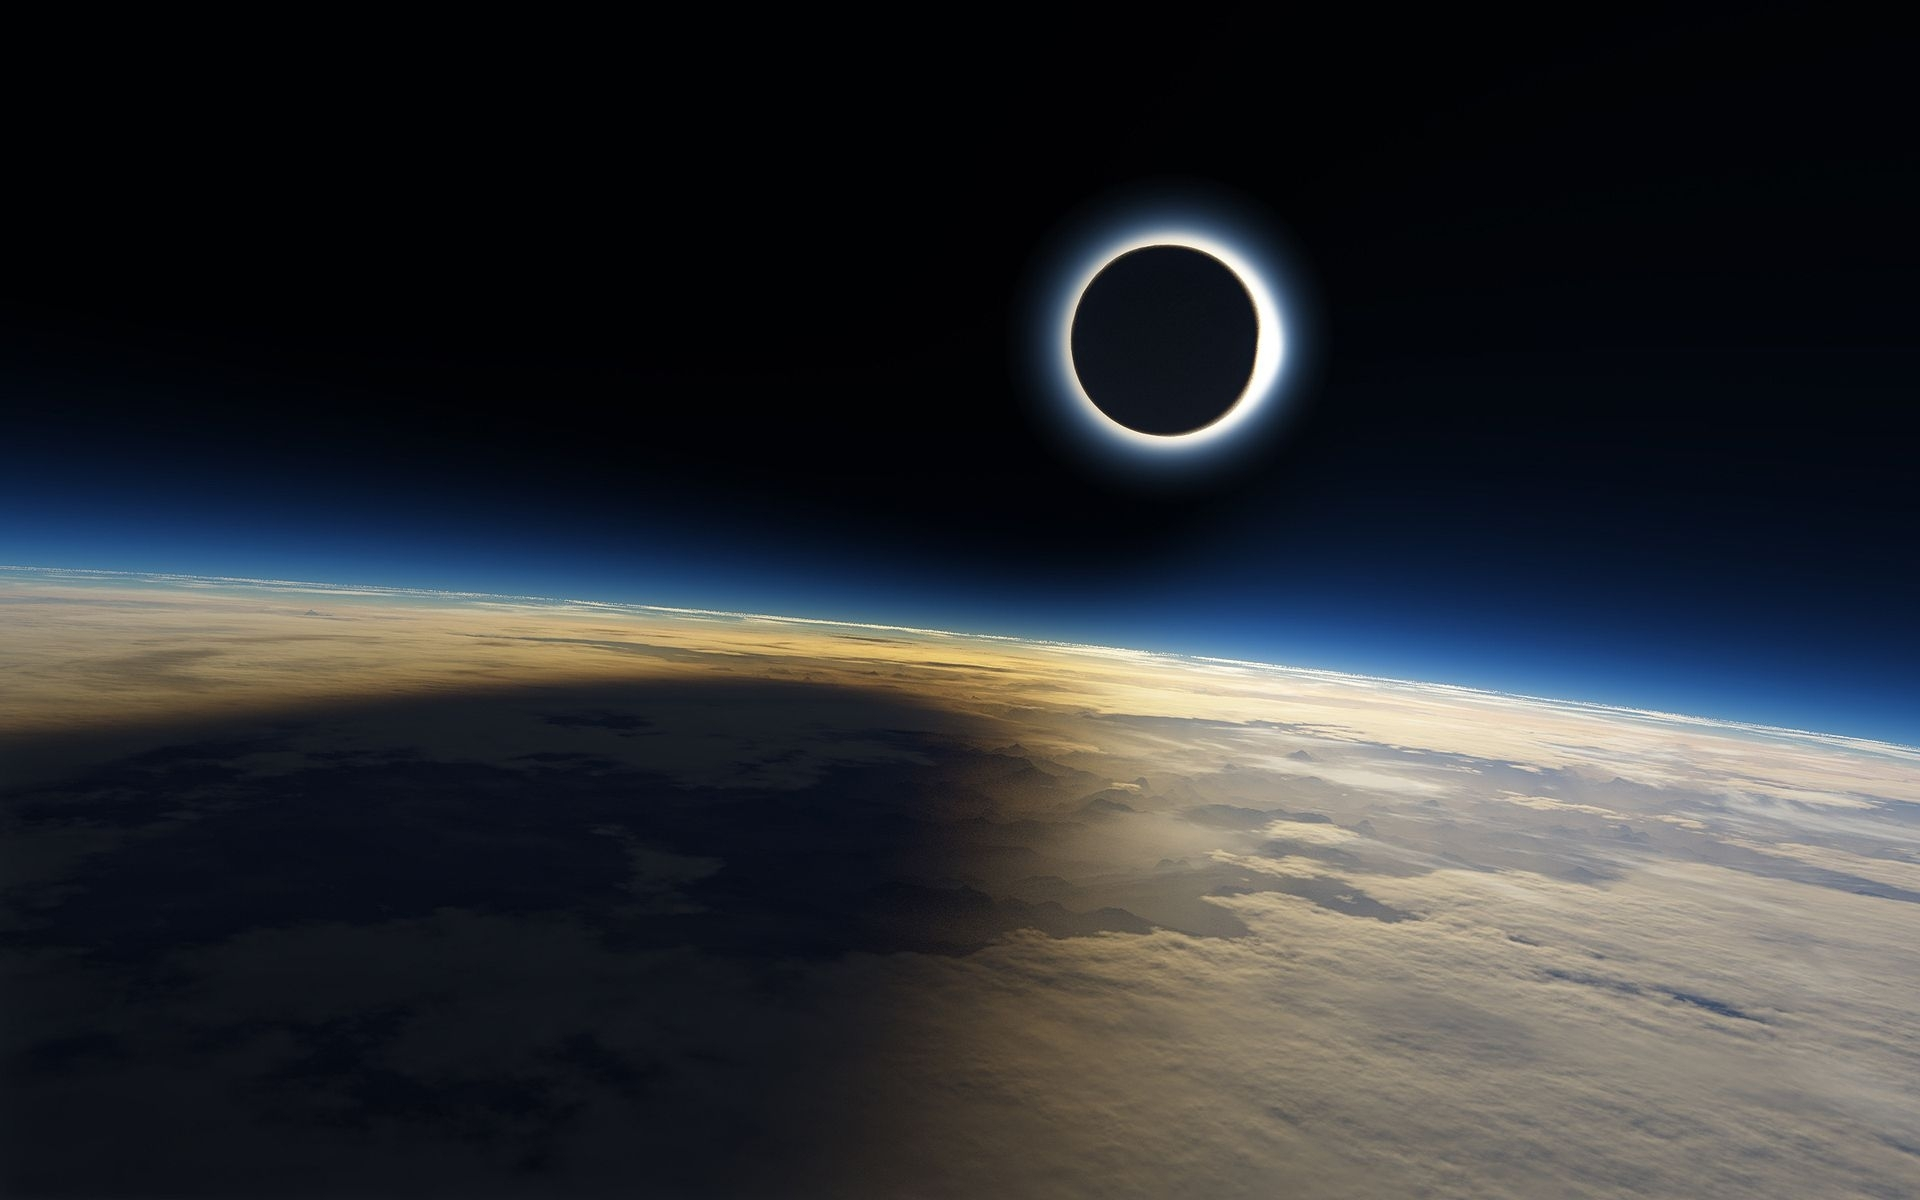 lunar eclipse, the heavens and iphone wallpapers on pinterest 1600